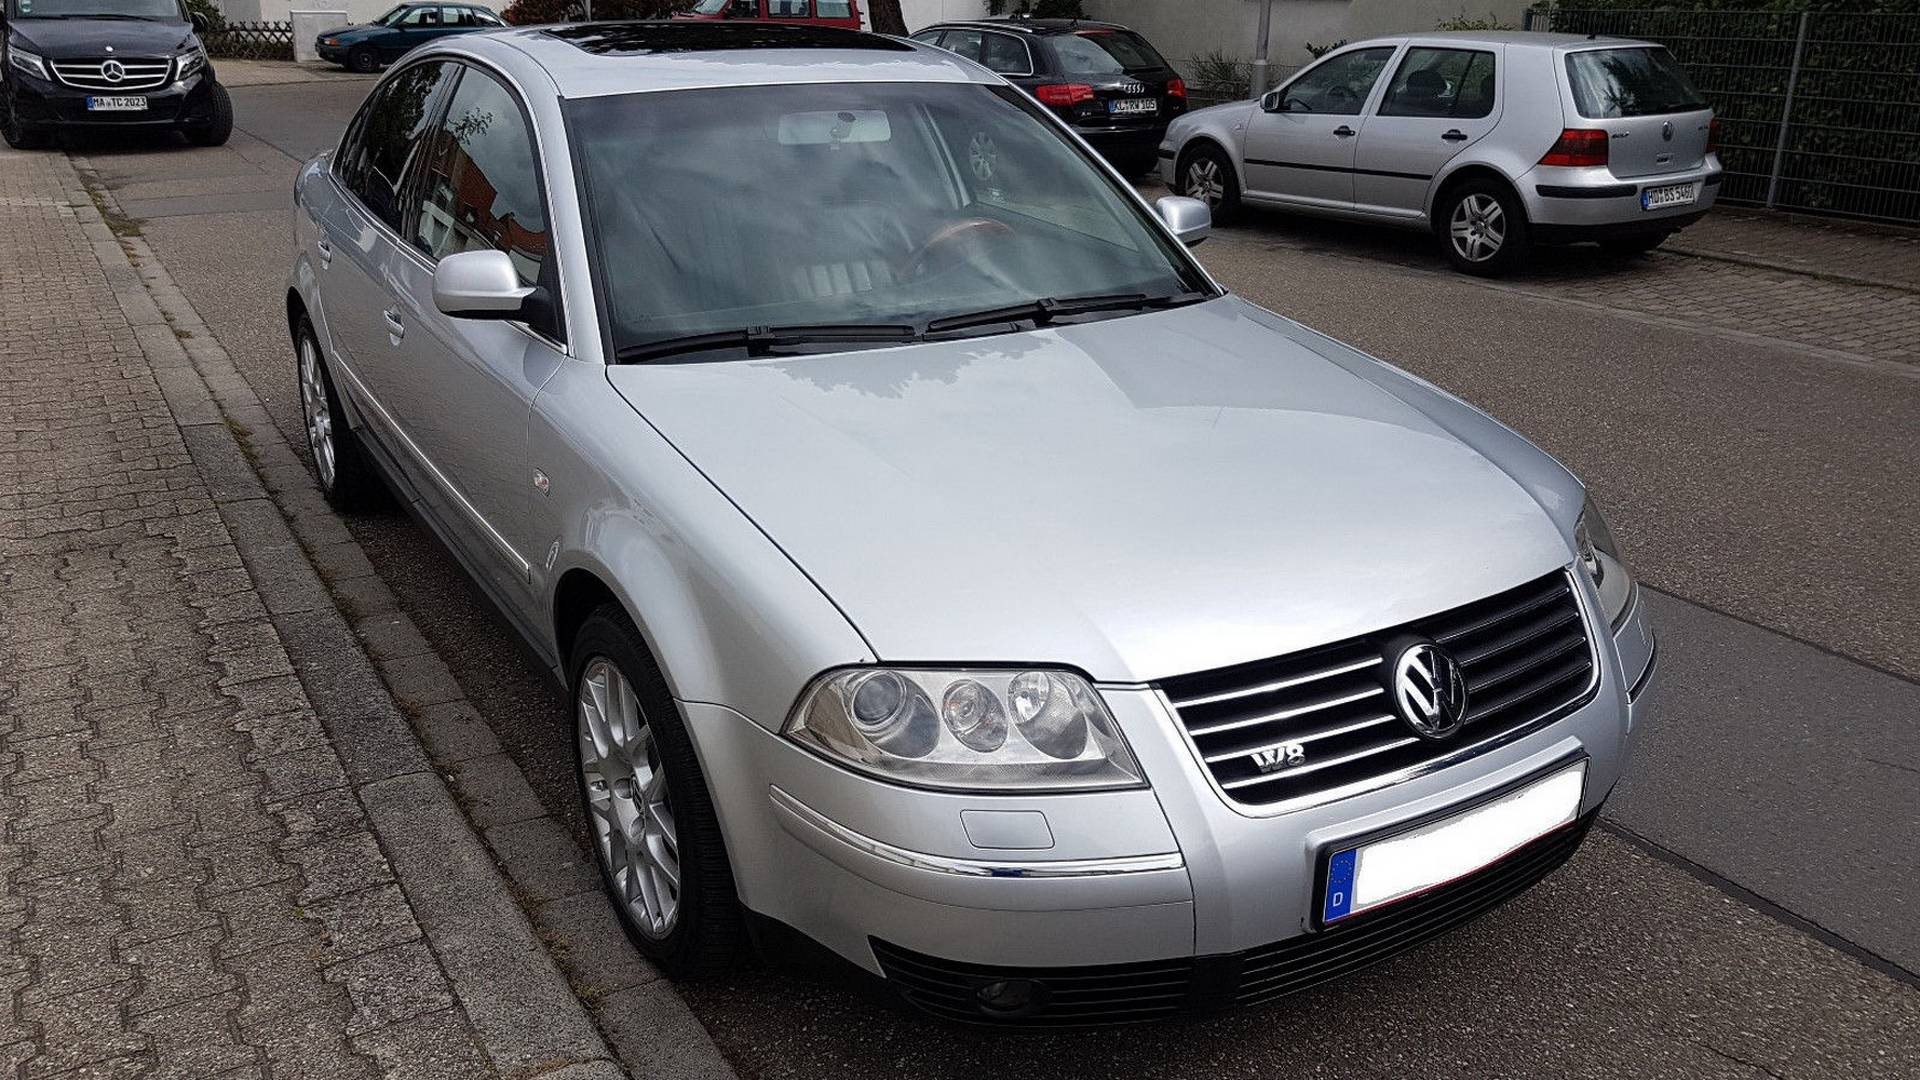 2002-vw-passat-w8-for-sale.jpg